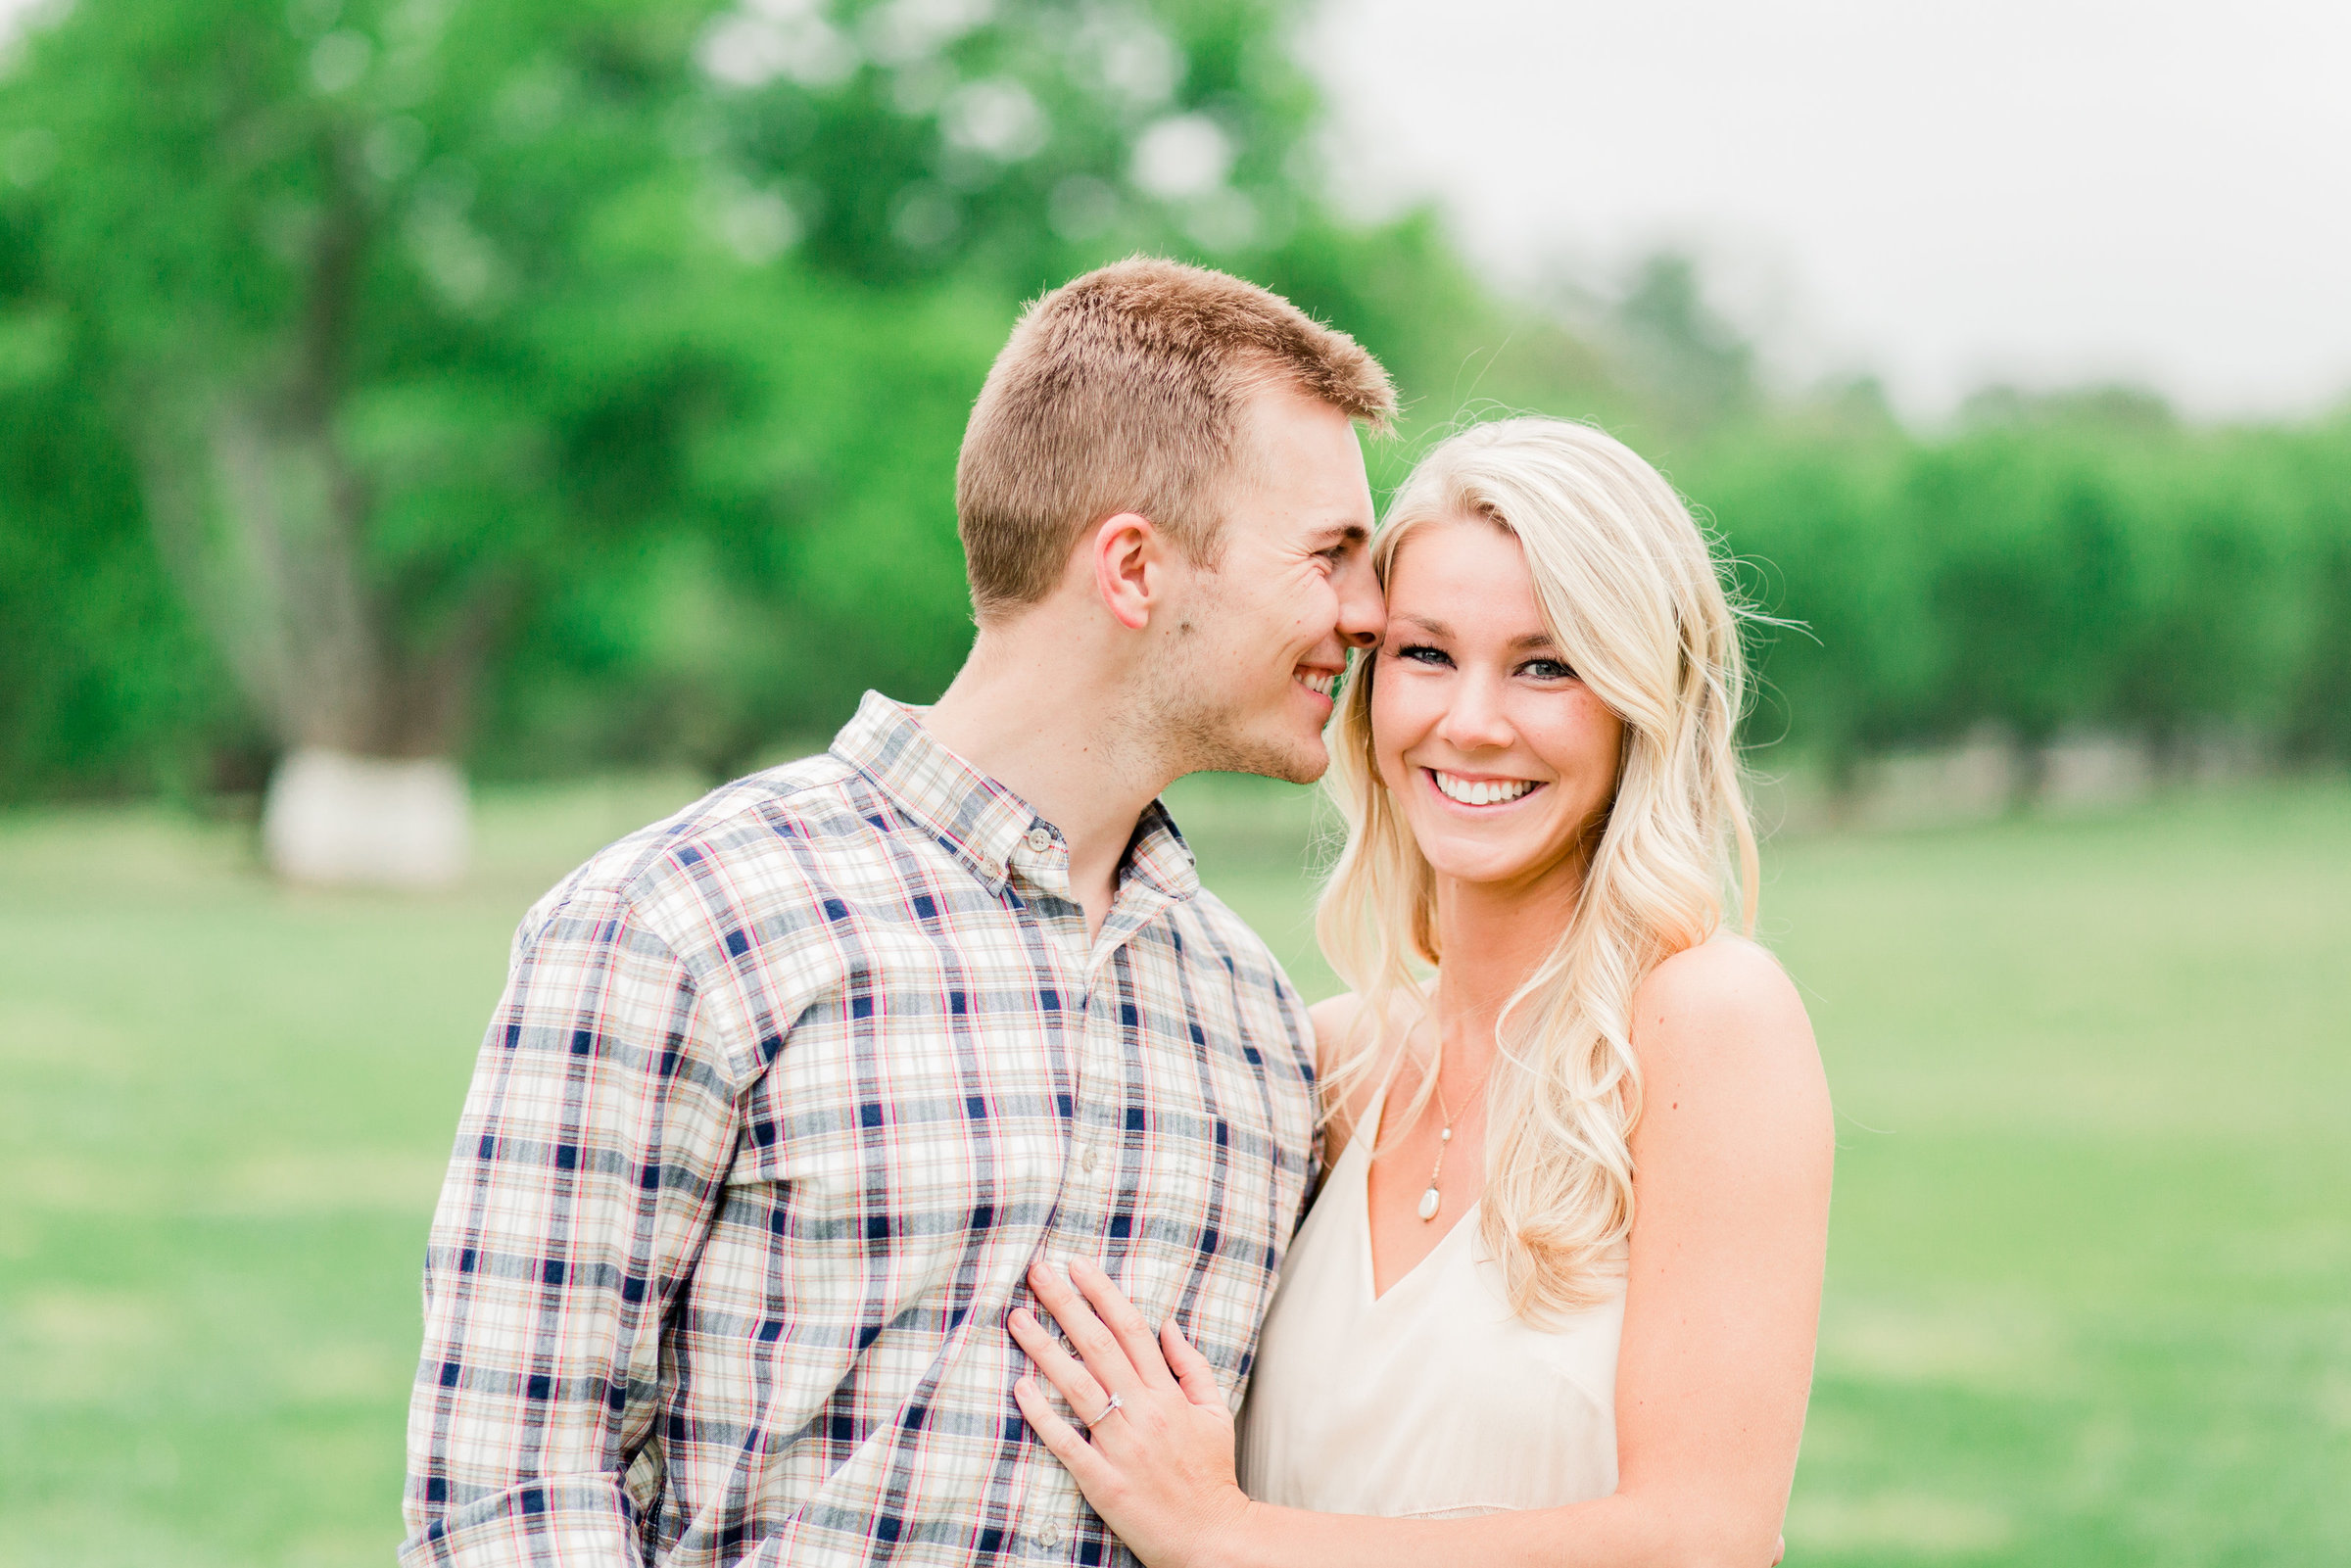 nick-charis-maymony-engagement-1